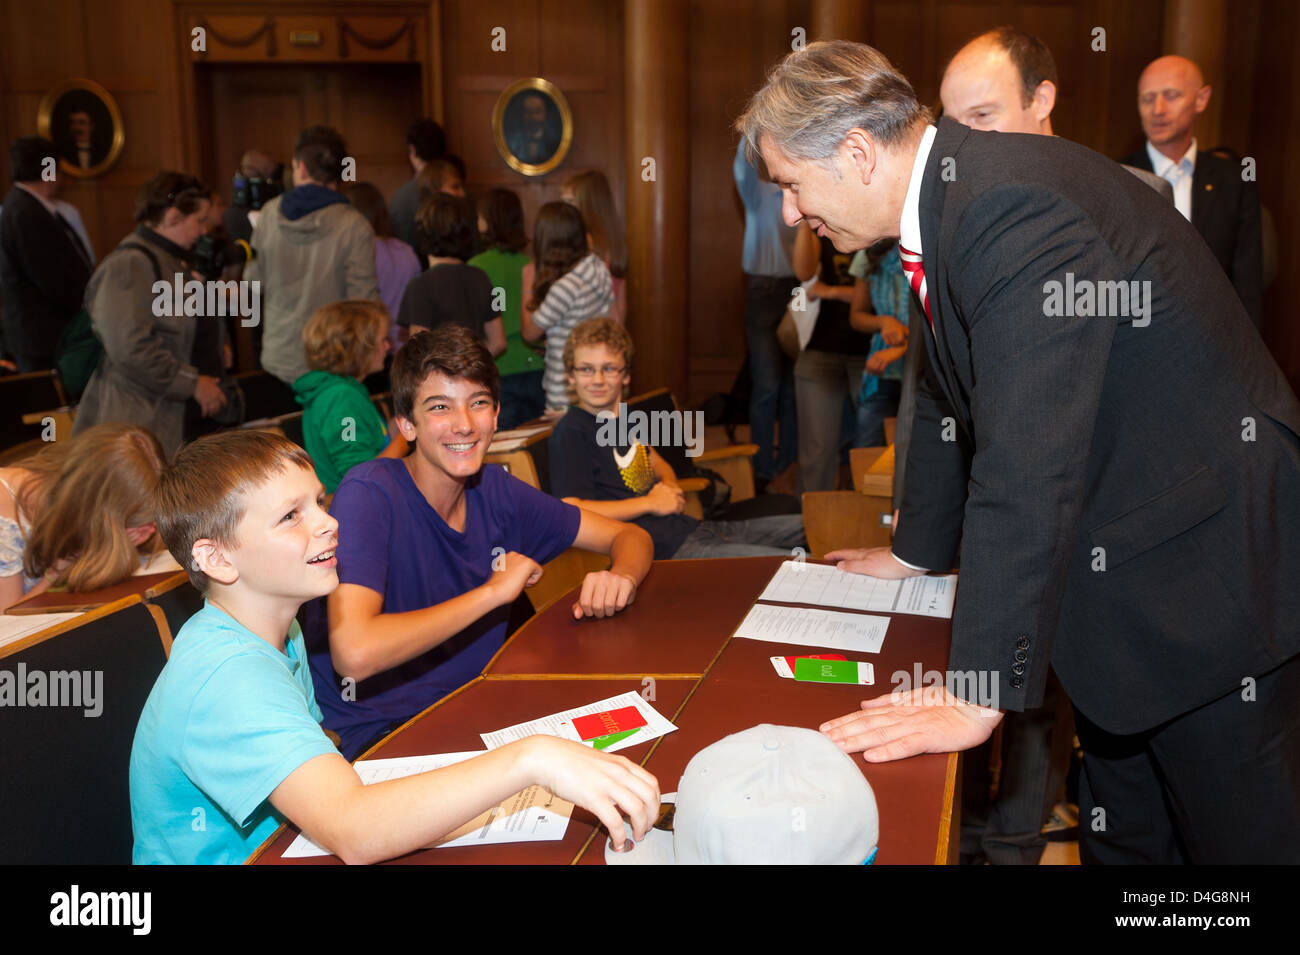 Berlin, Germany, the governing mayor Klaus Wowereit, the SPD, the youth chooses event - Stock Image